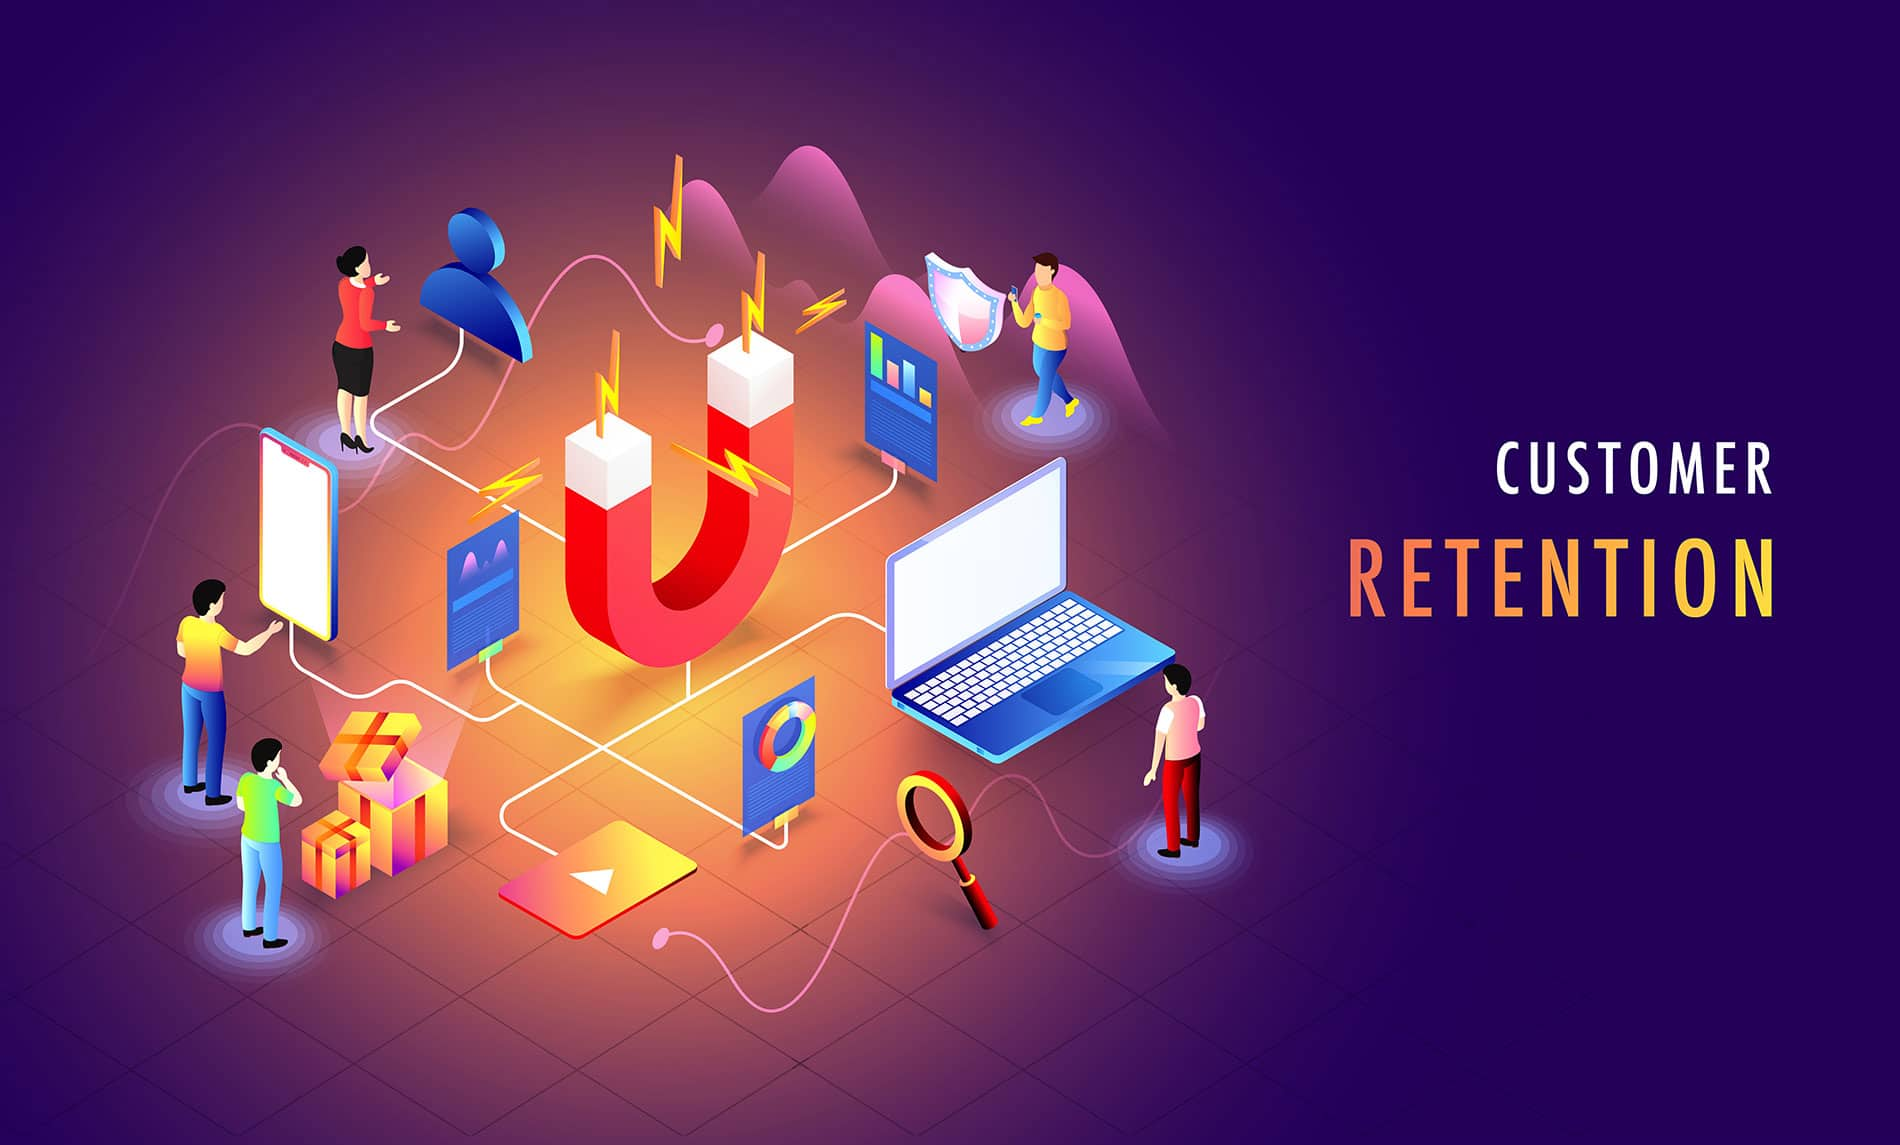 Customer experience and user retention